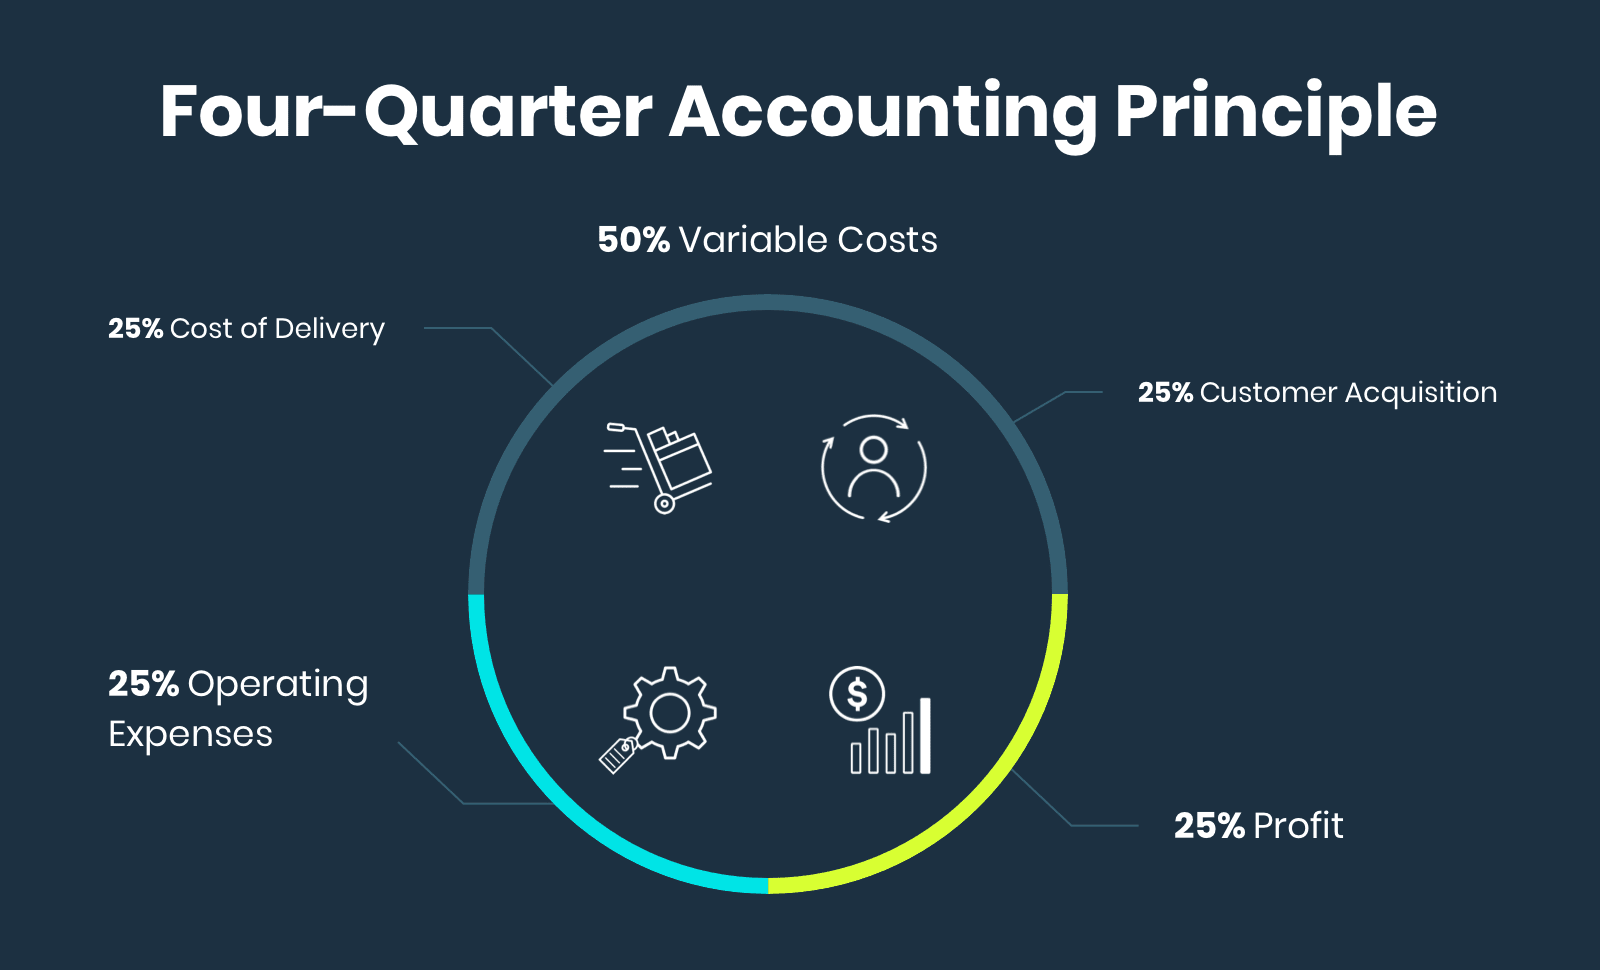 The four-quarter accounting principle: Ensuring variable costs (cost of delivery and customer acquisition) stay below 50%, to keep operating expenses and profit each around 25%